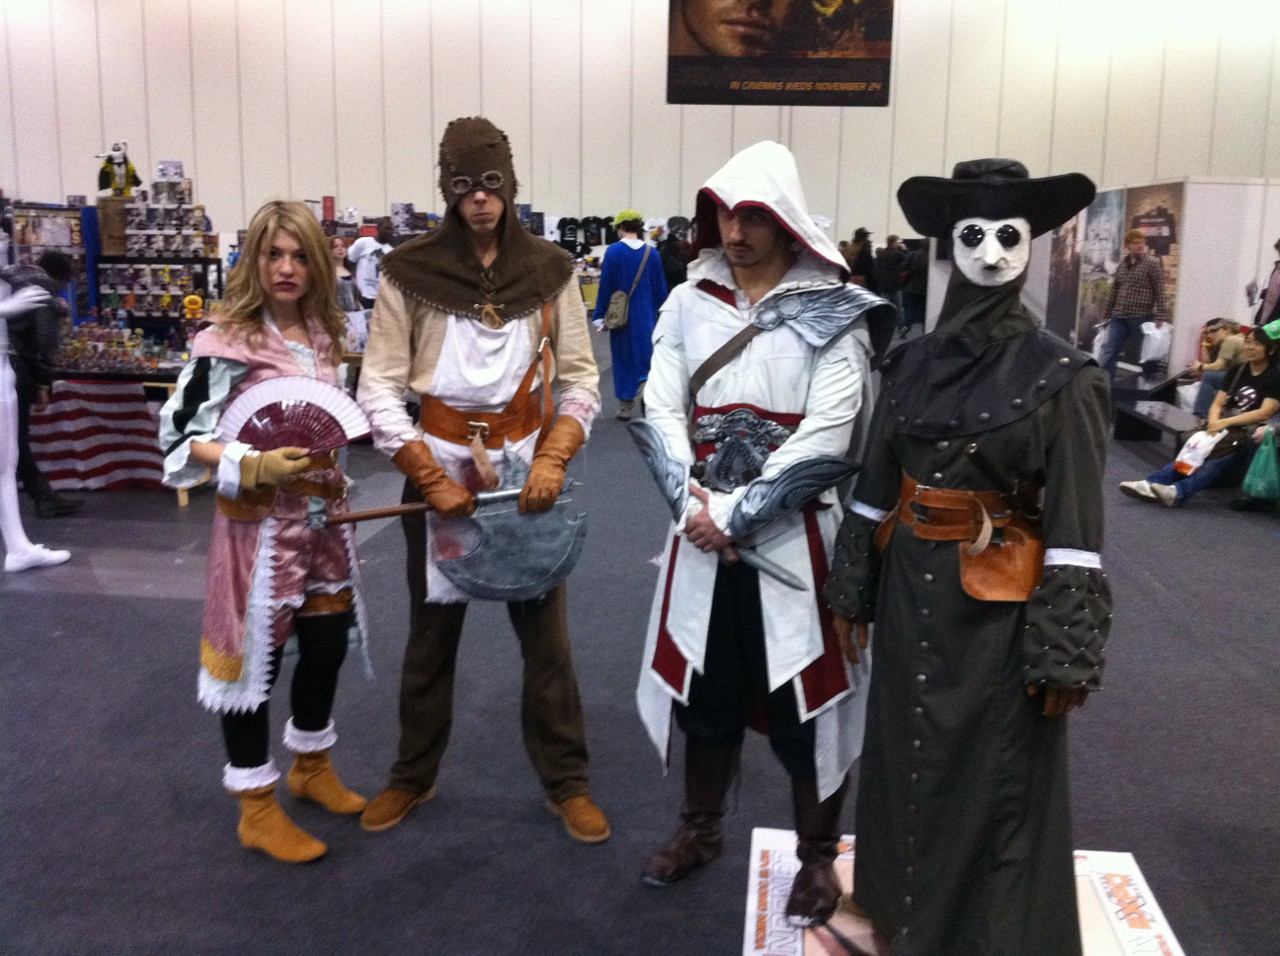 Mcm Expo Games Expo Summary Part 1 The Average Gamer